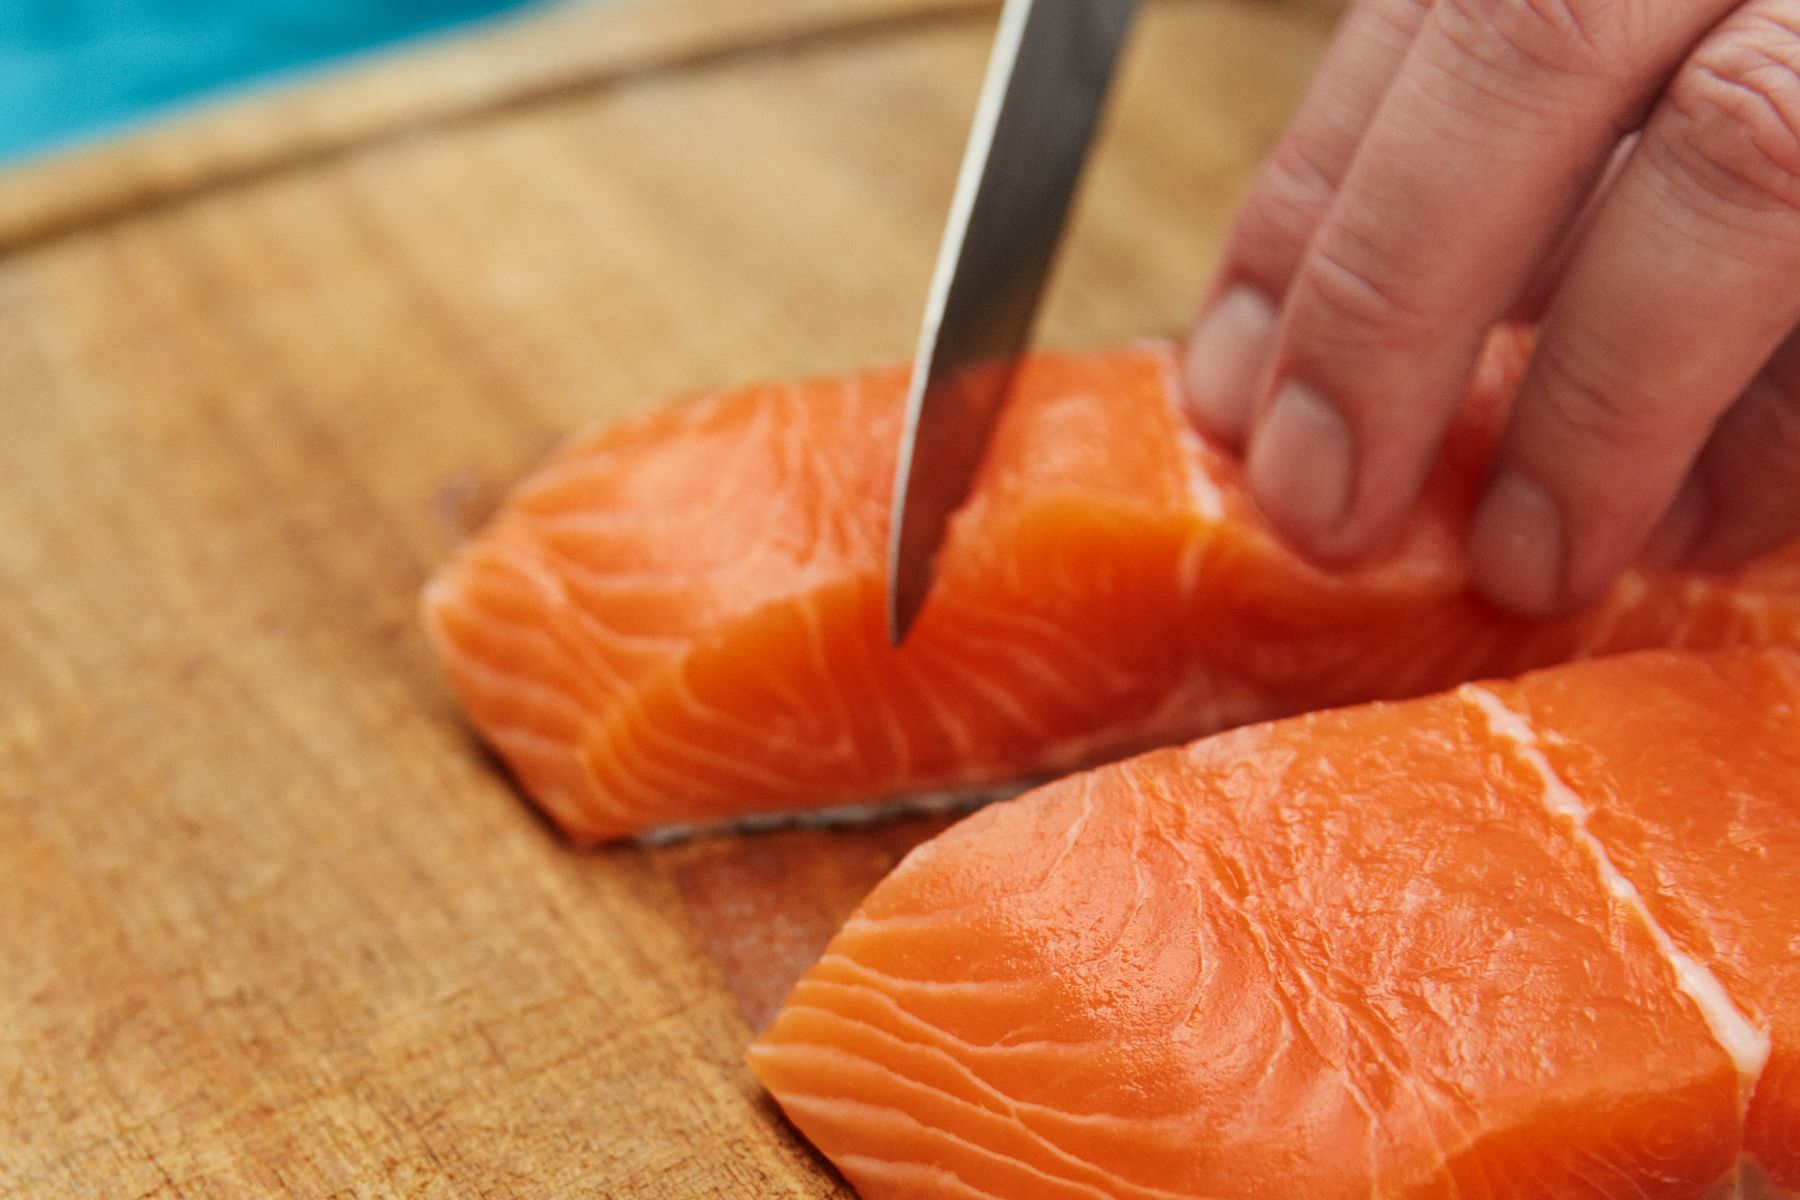 Fillet of salmon being cut with knife on chopping board